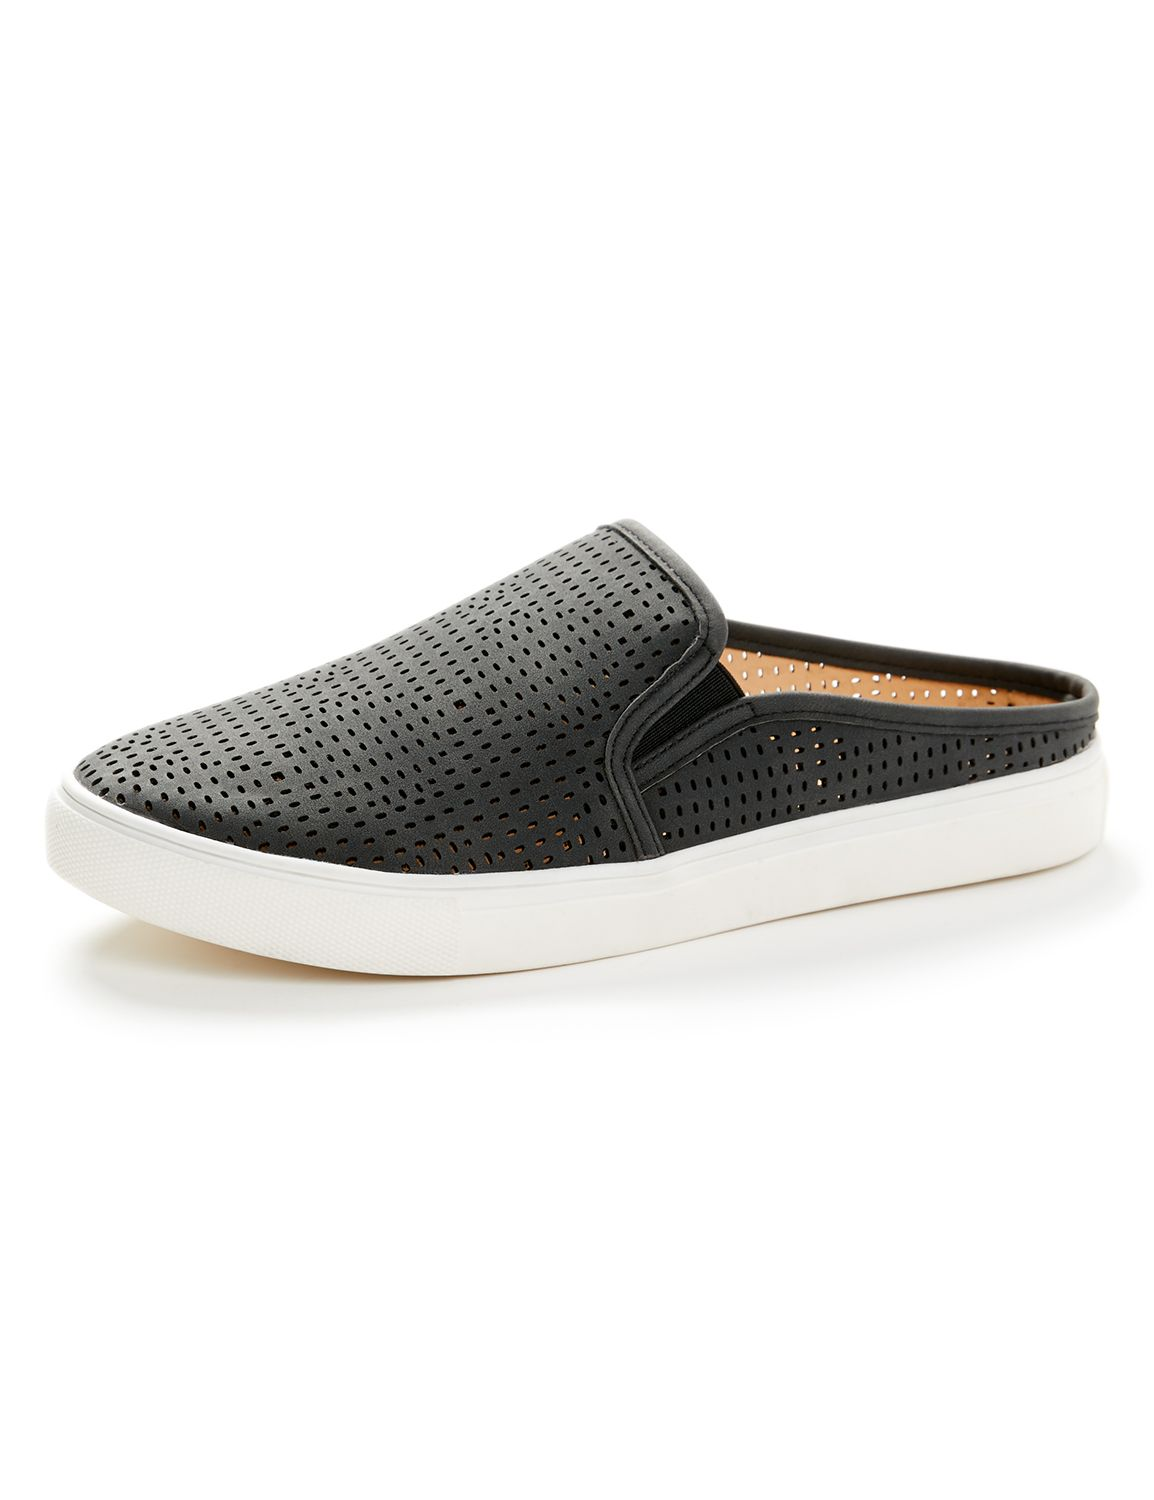 Good Soles Slip-On Sneaker Perf Slip On Sneaker M24813 MP-300097772